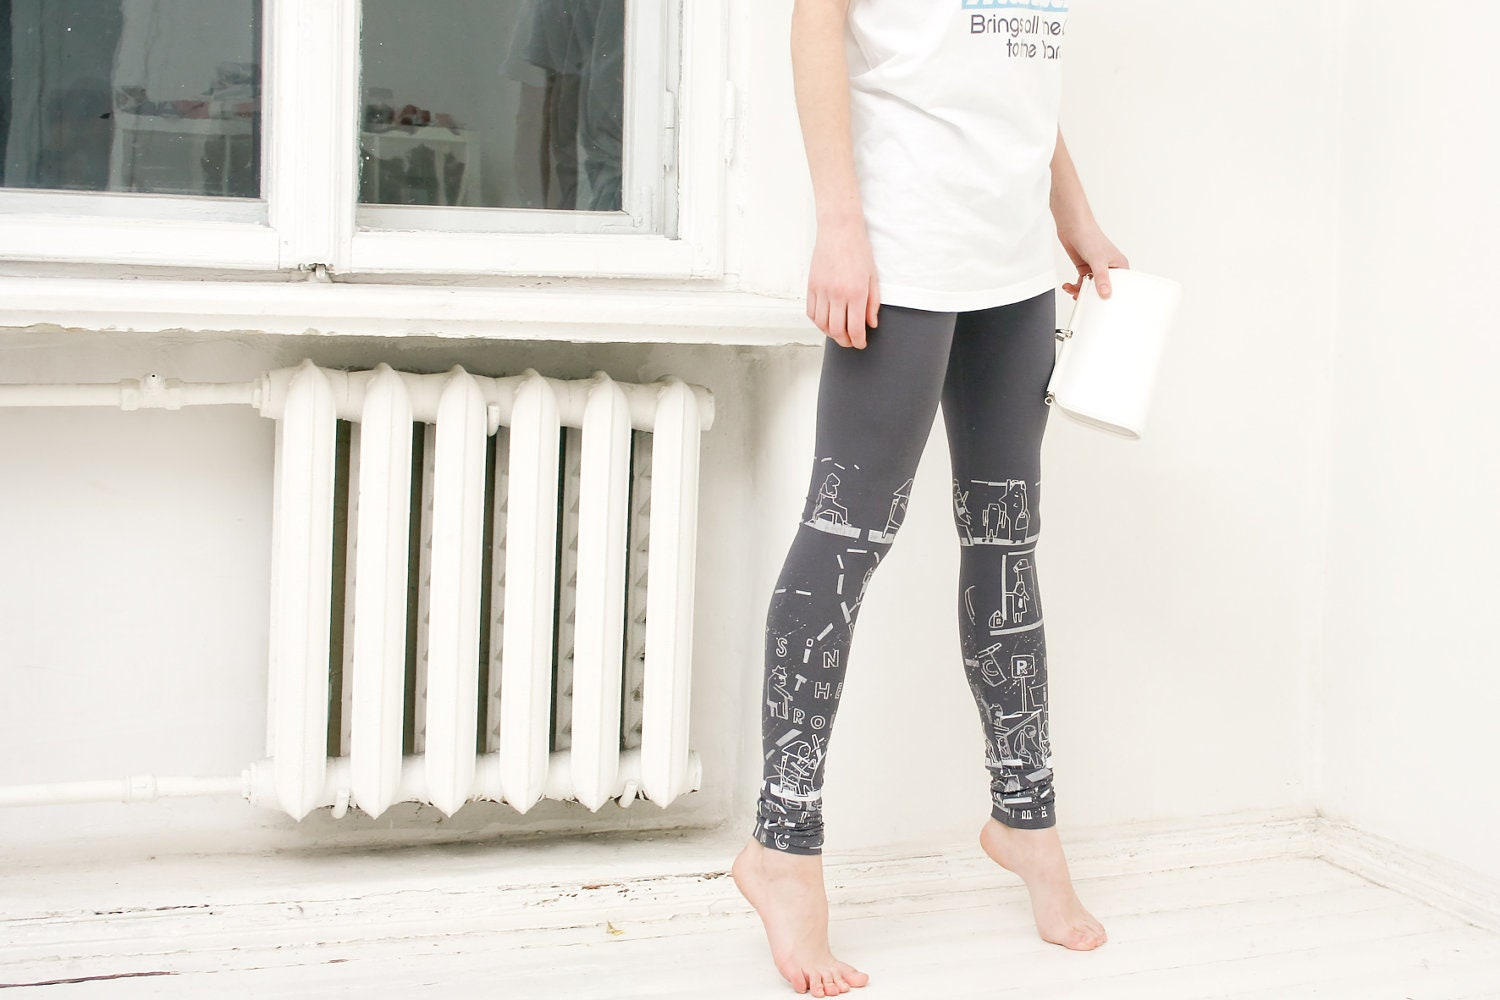 Cruising in the trolley- gray leggings with silver/ white print - $45.00 USD